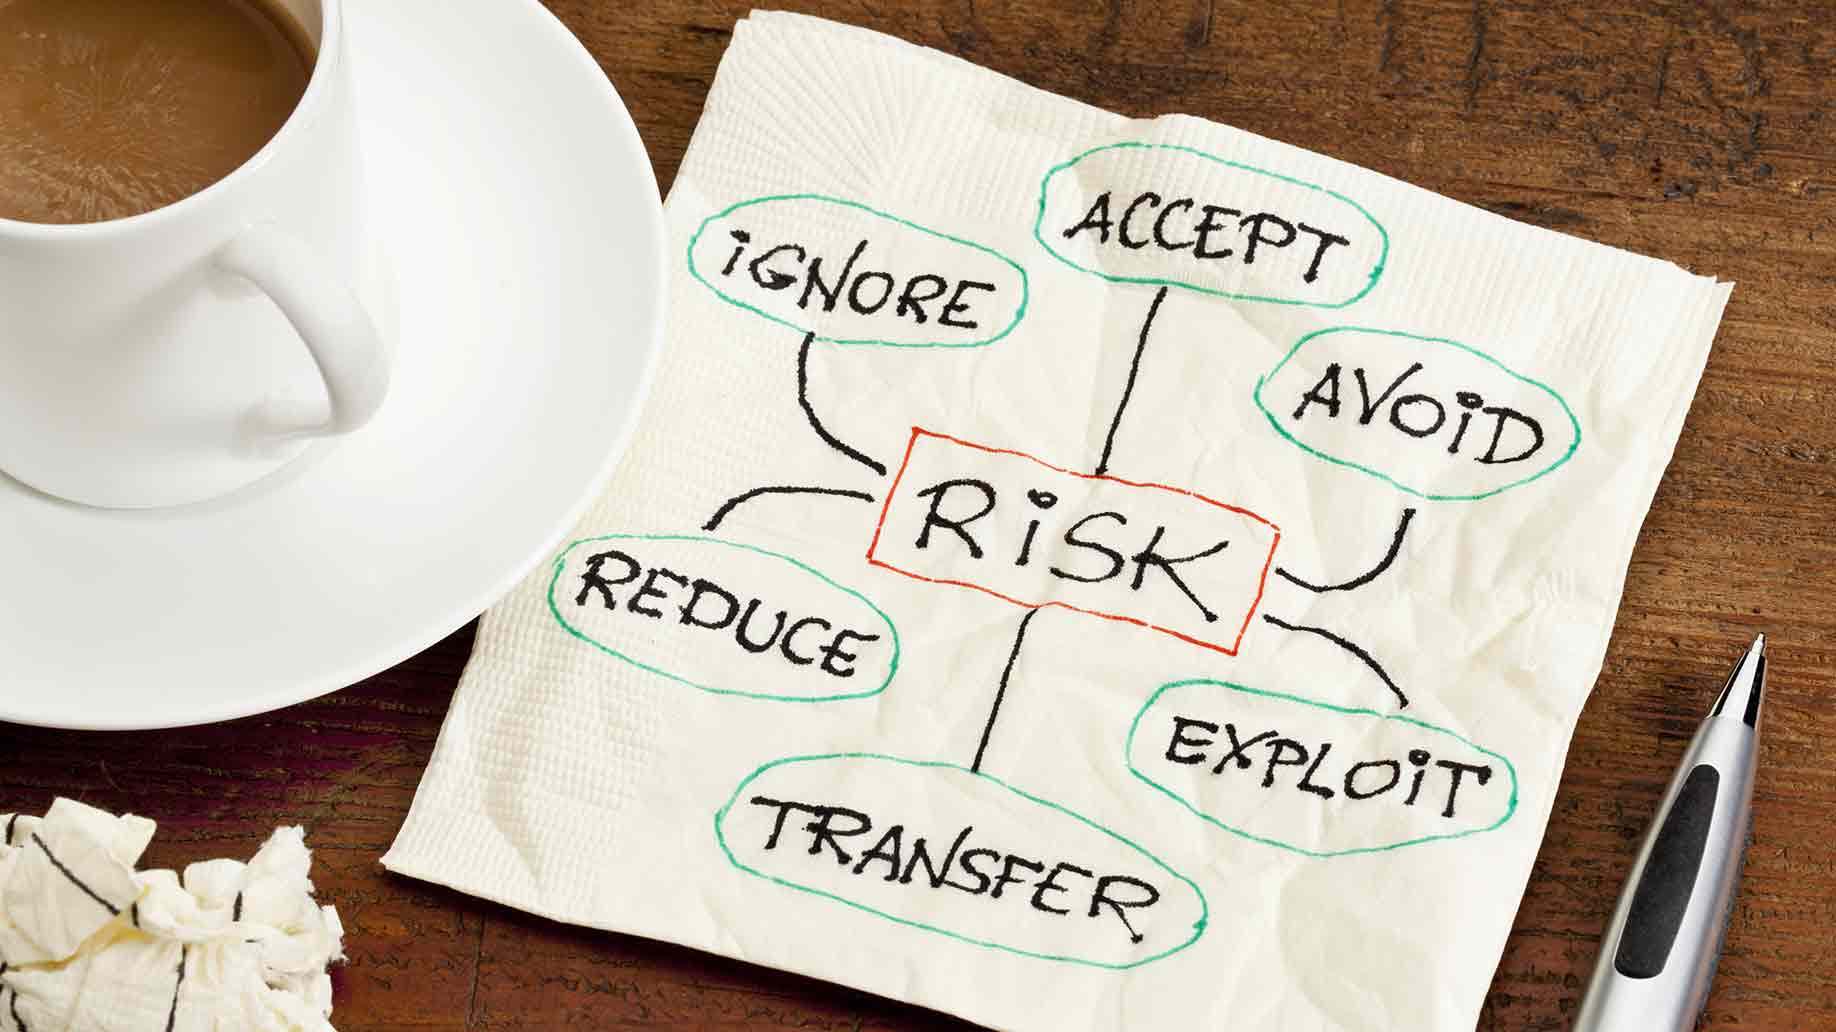 risk management strategies ignore accept avoid